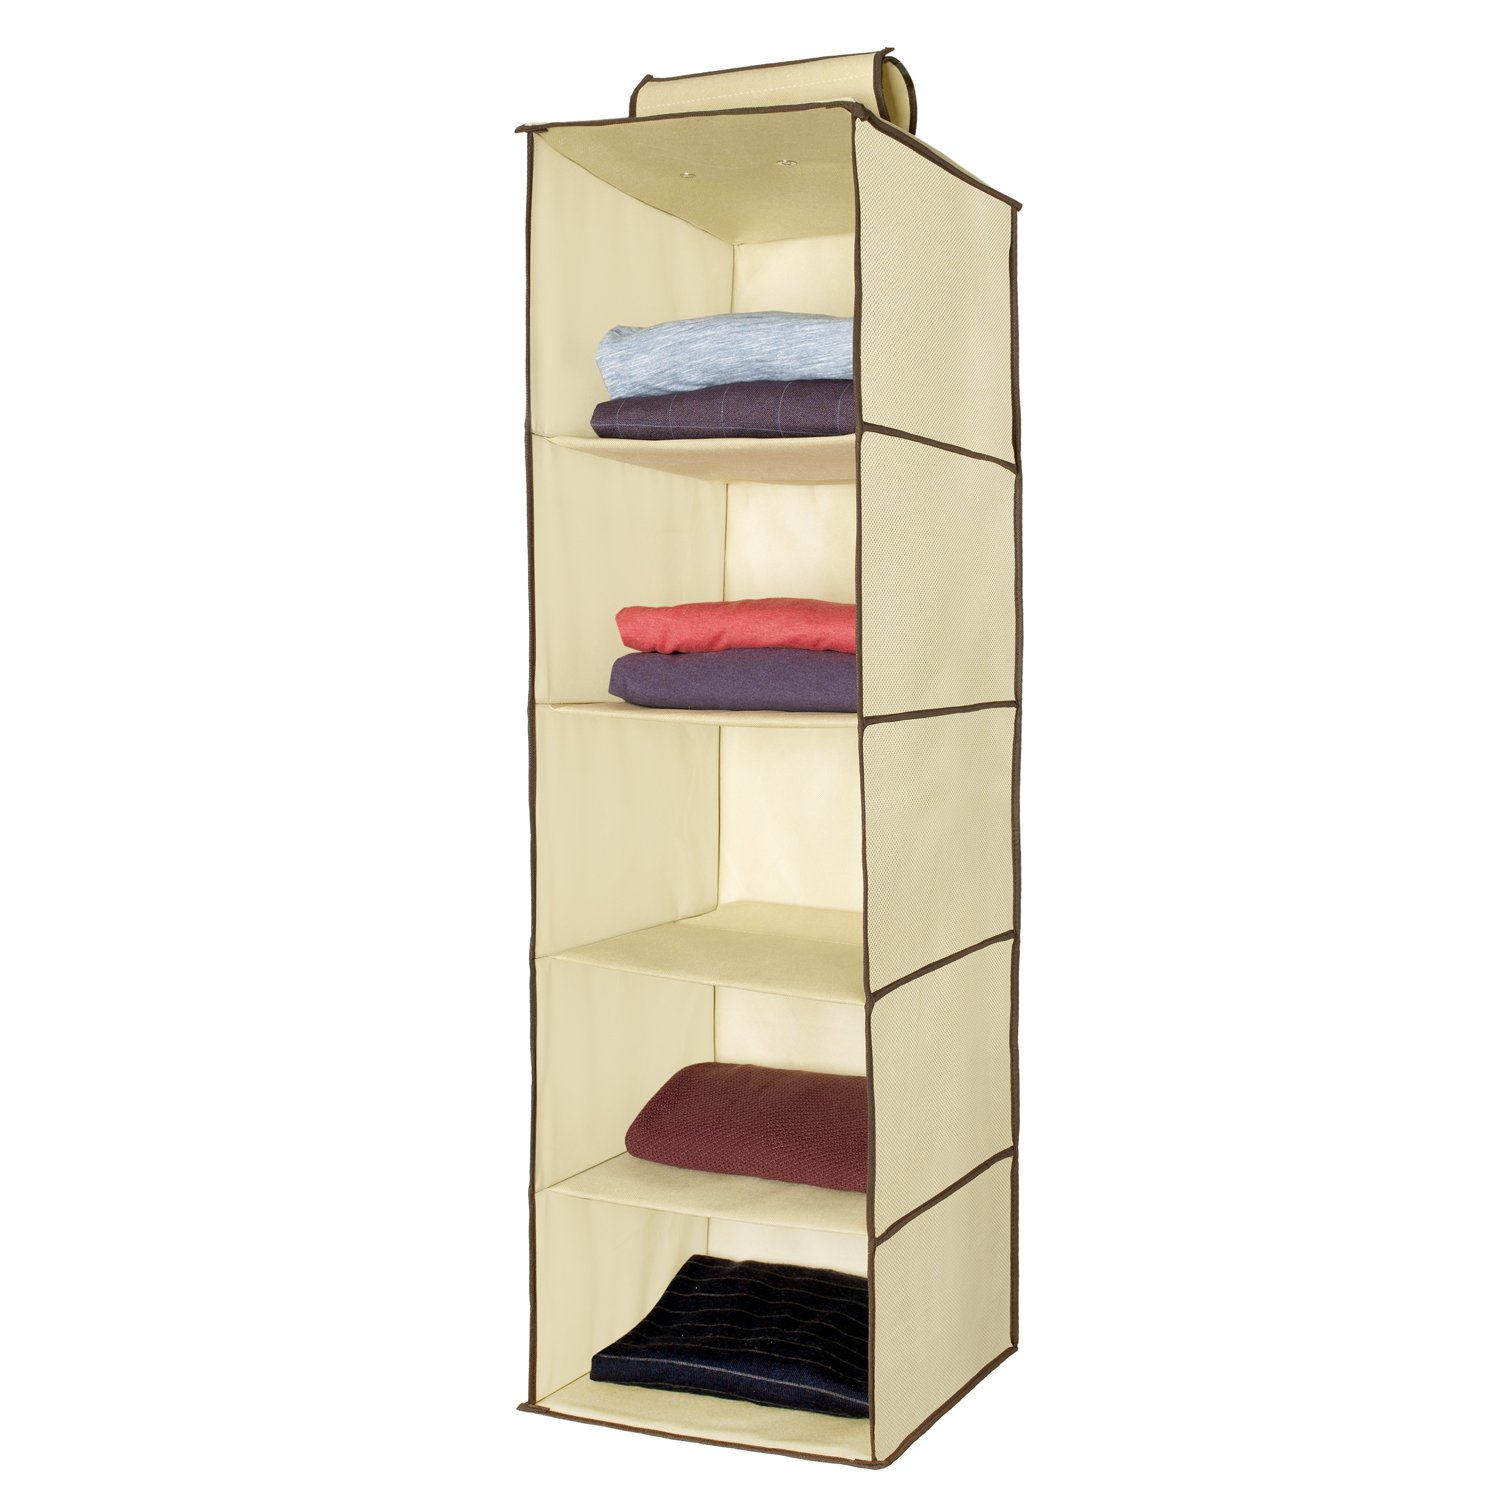 Incroyable ... Closet Organizer | 5 Shelf Beige | Closet Hanging Organizer | Closet  Organizer Hanging Shelves | Sweater Hanging Organizer | Hanging Clothes  Storage Box ...